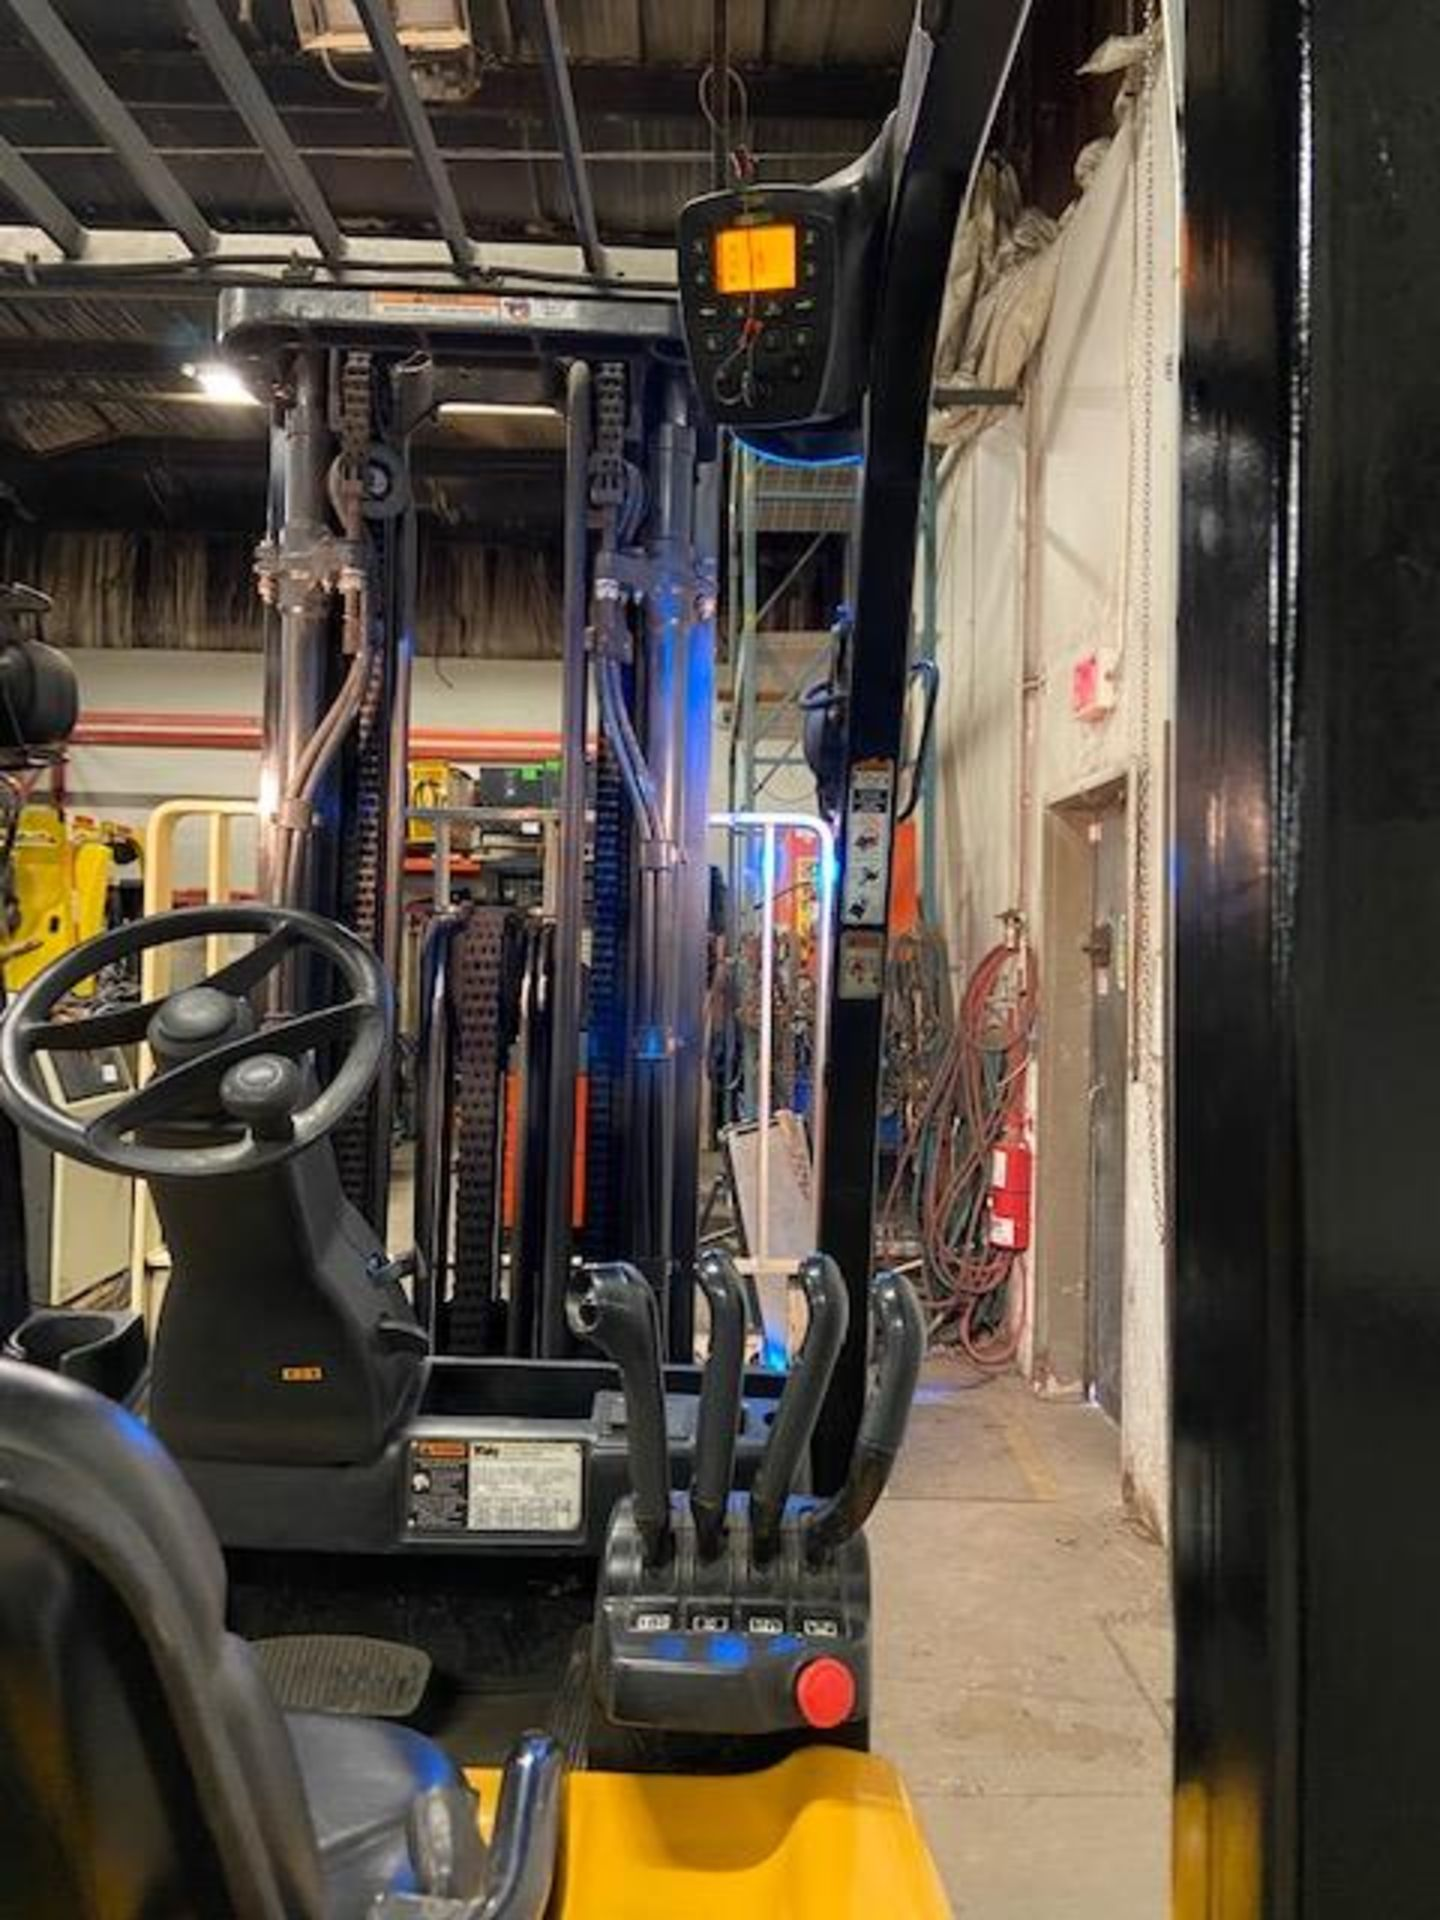 FREE CUSTOMS - 2014 Yale 3500lbs Capacity Forklift Electric with sideshift & fork positioner & 3- - Image 3 of 3